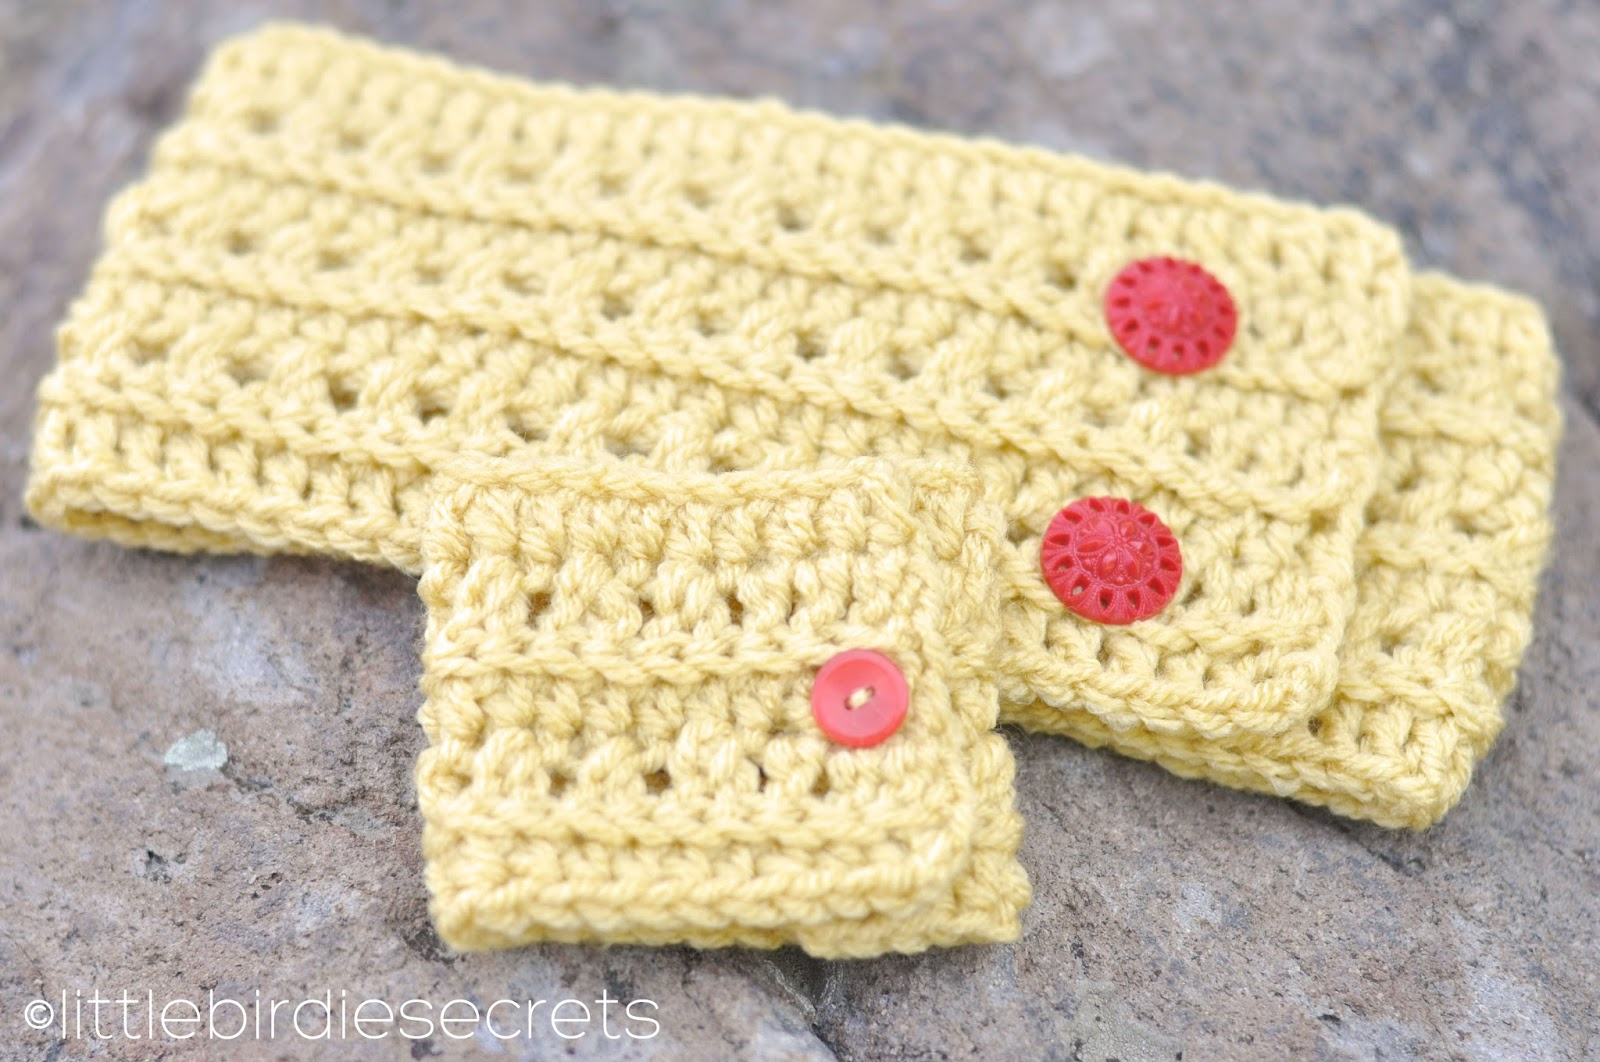 Free Adjustable Crochet Headband Pattern : Little Birdie Secrets: free crochet headband and cuff ...